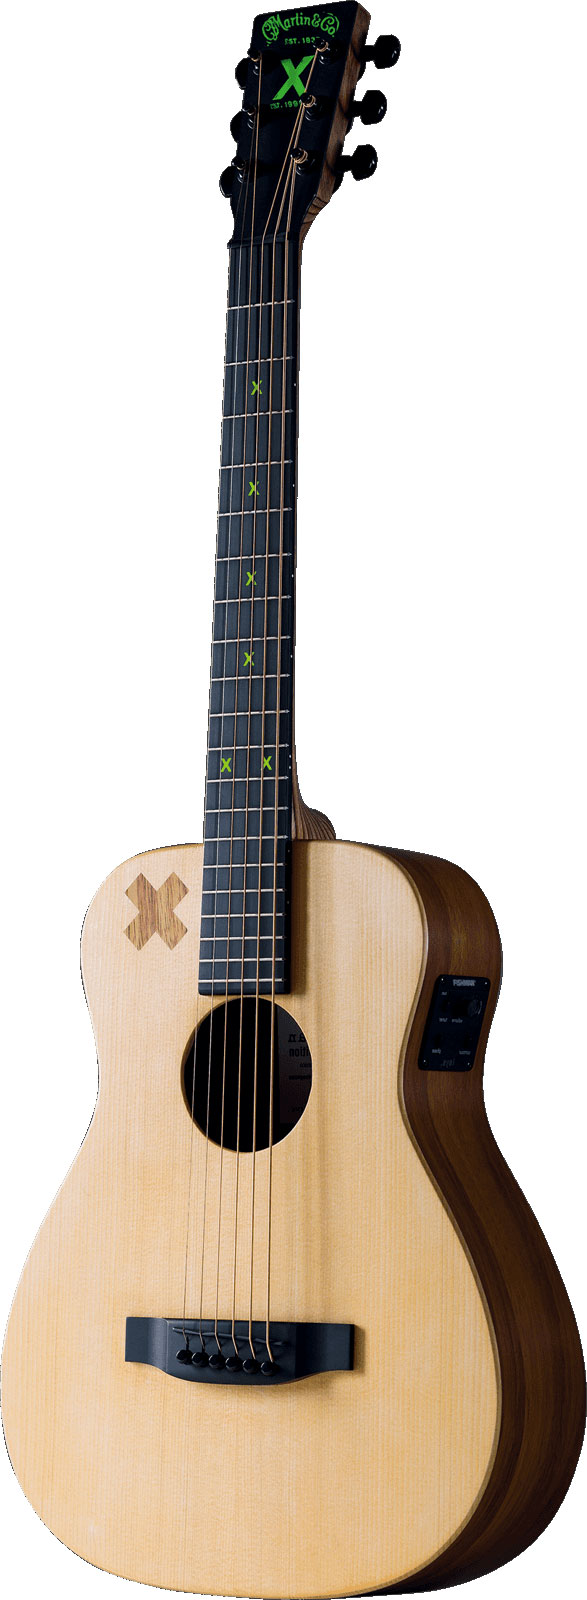 Martin Gaucher Little Martin Lx Ed Sheeran V2 + Housse